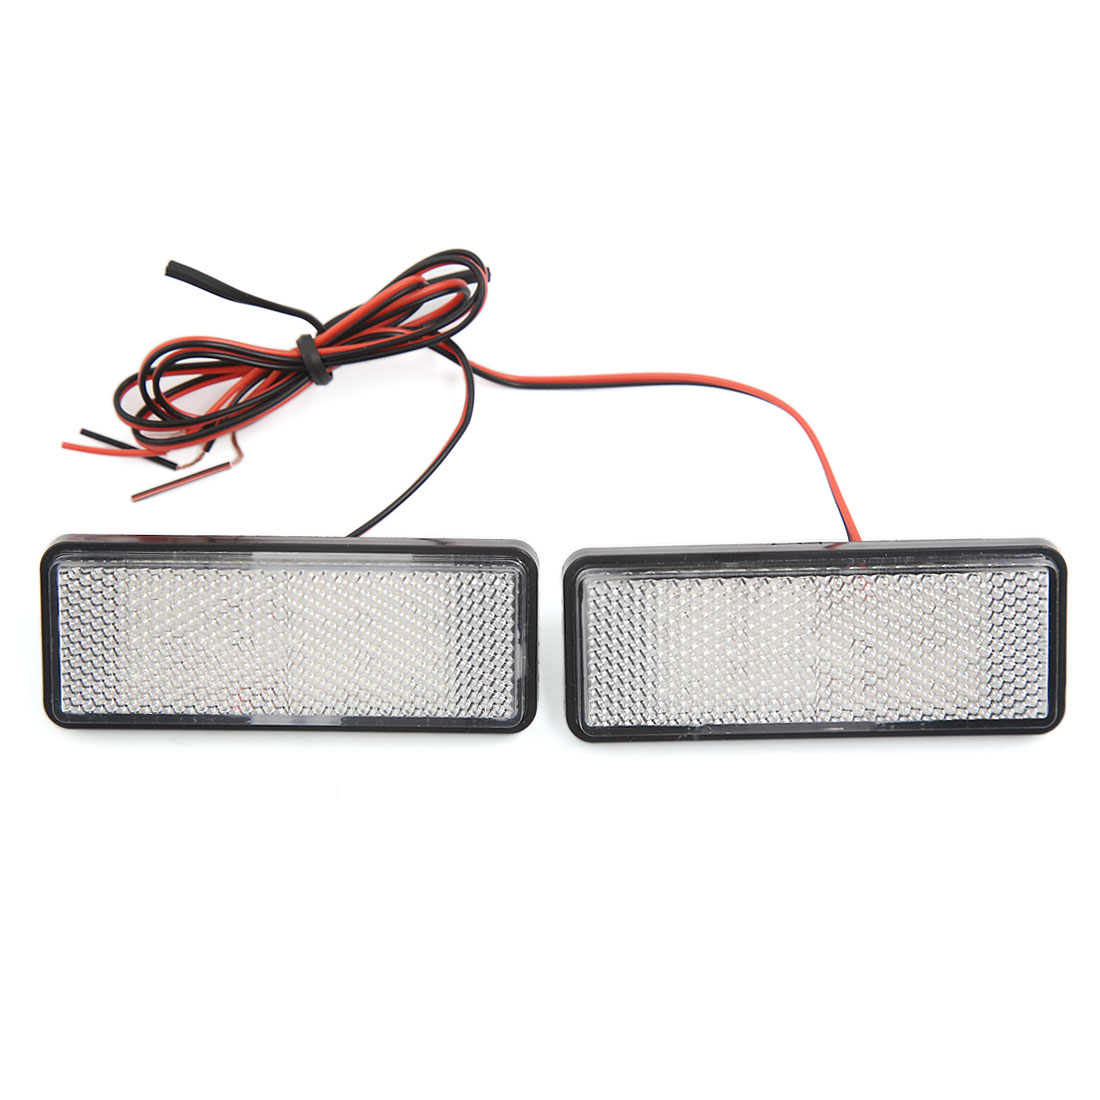 2pcs Universal Car Motorcycle Rectangle Reflector Red LED Strobe Lamp Rear Tail Light